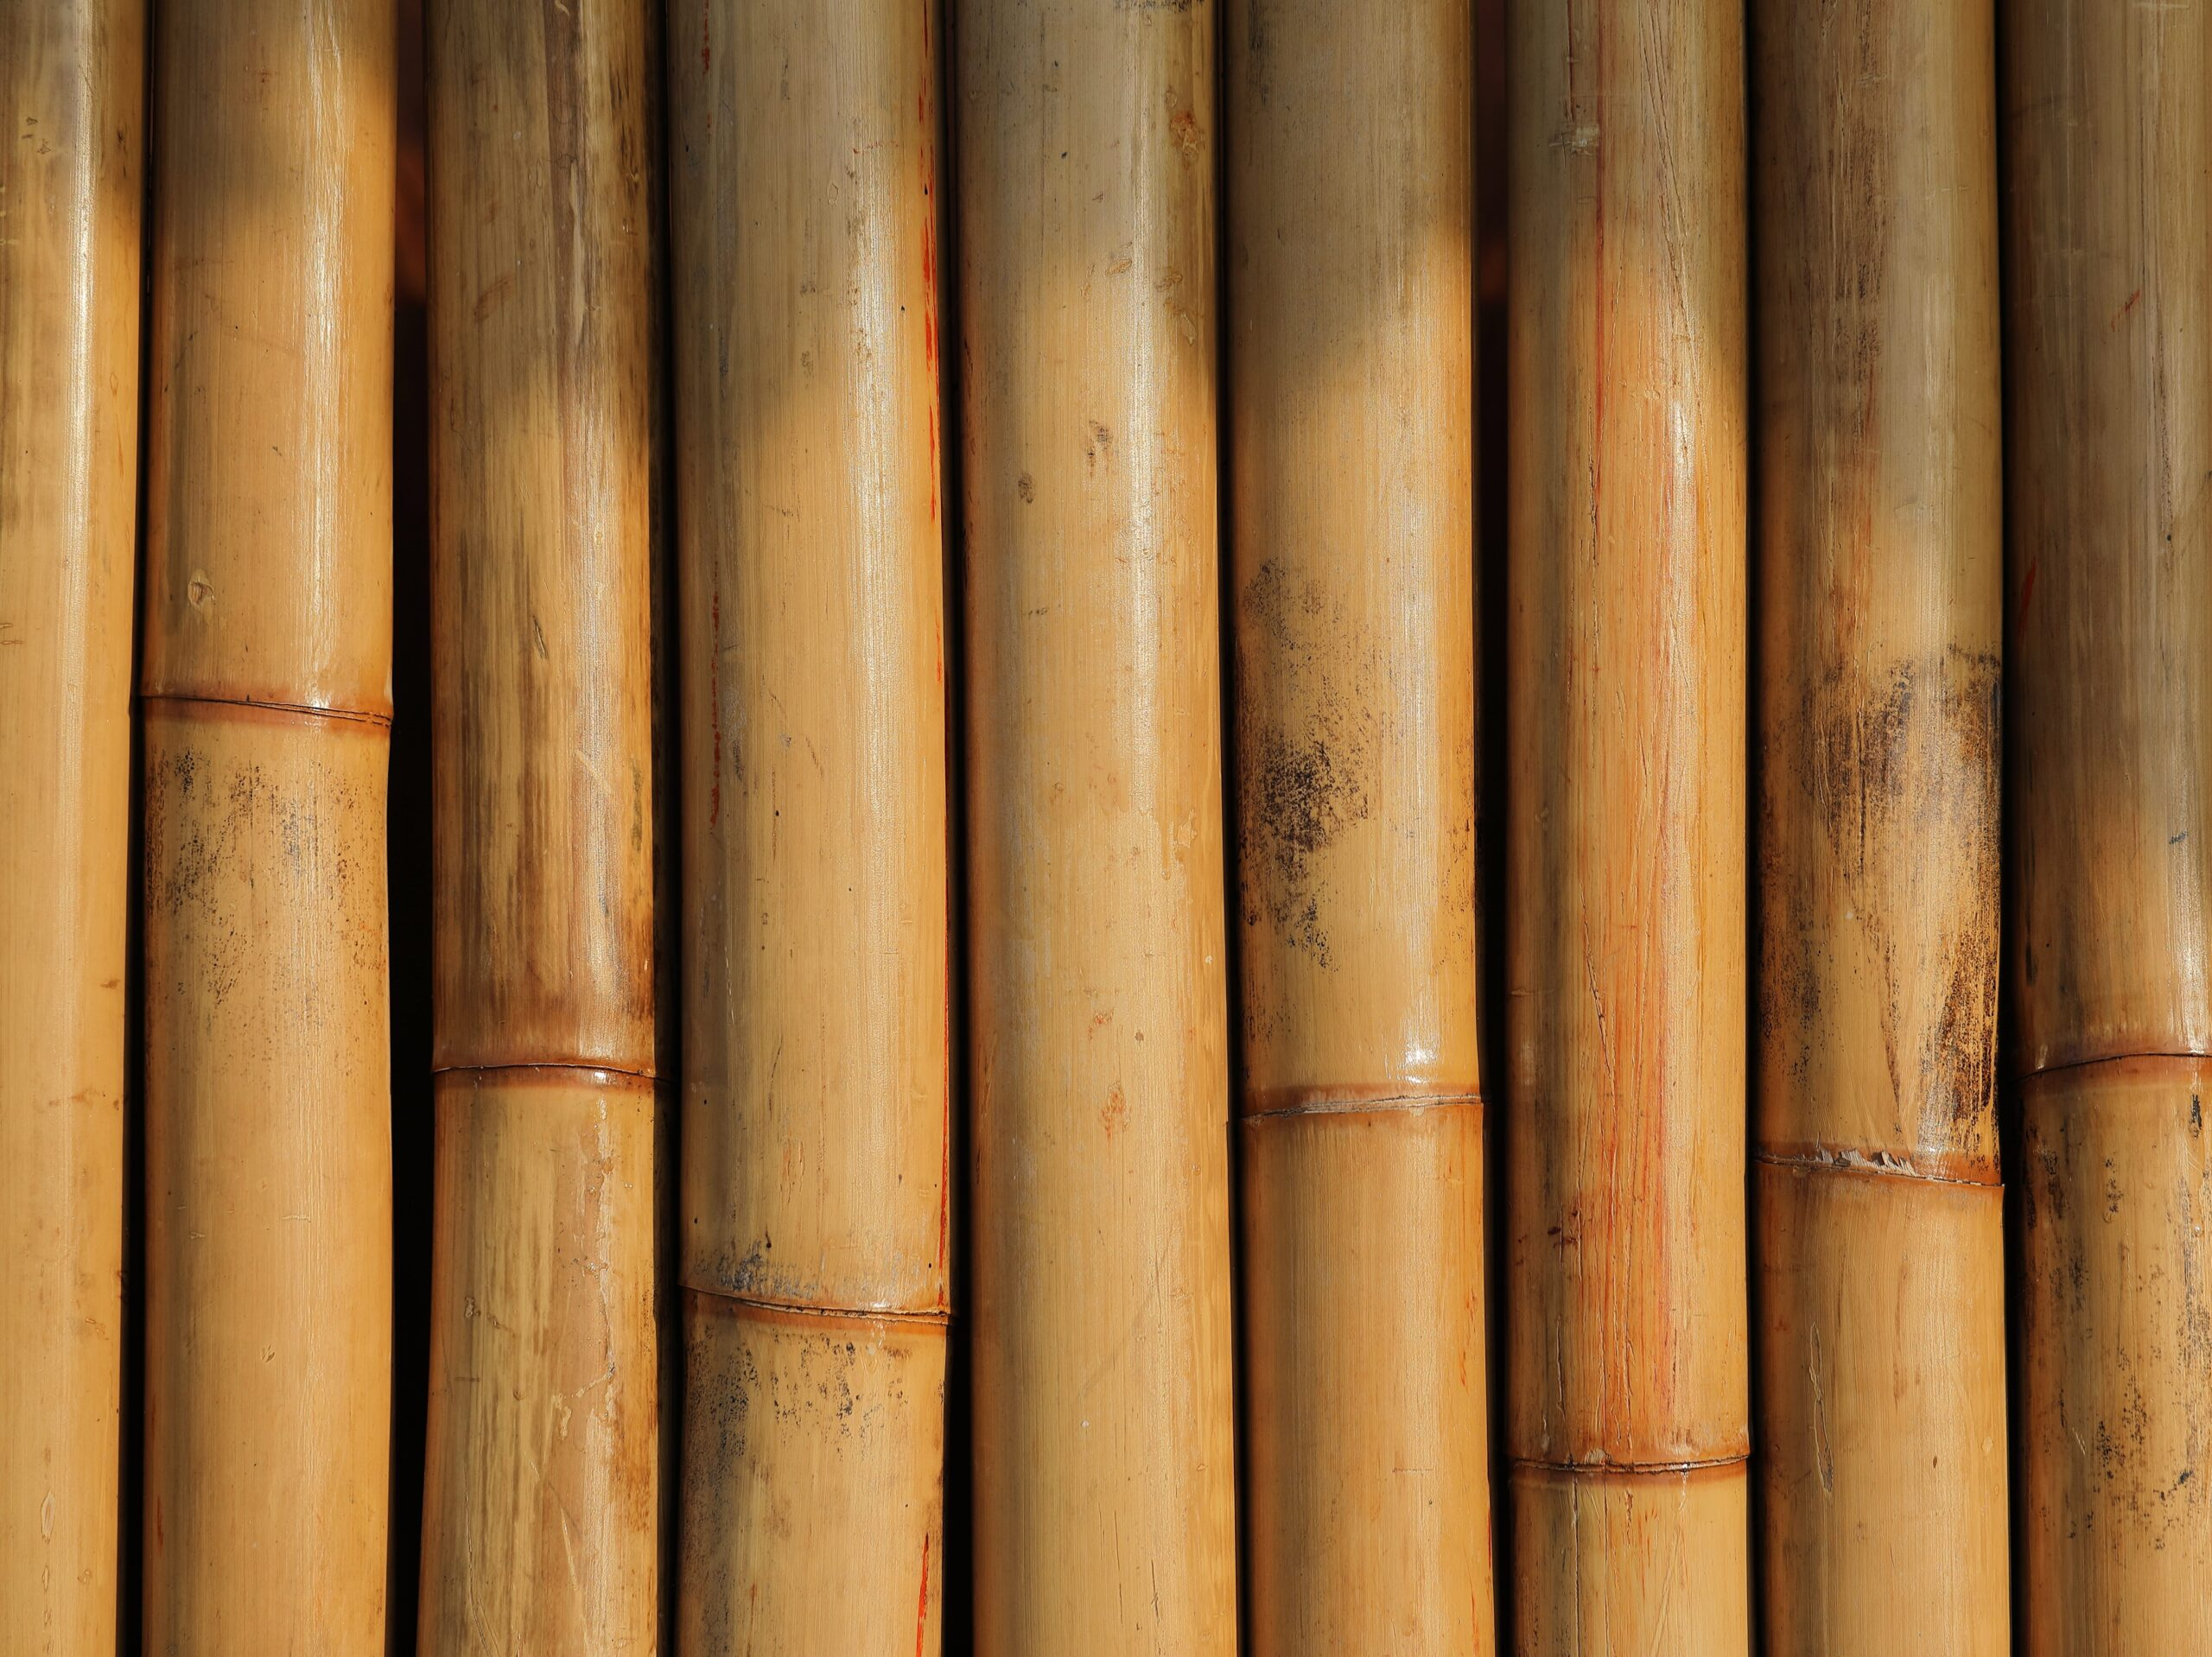 Dry bamboo waiting to be made into eco-friendly goods